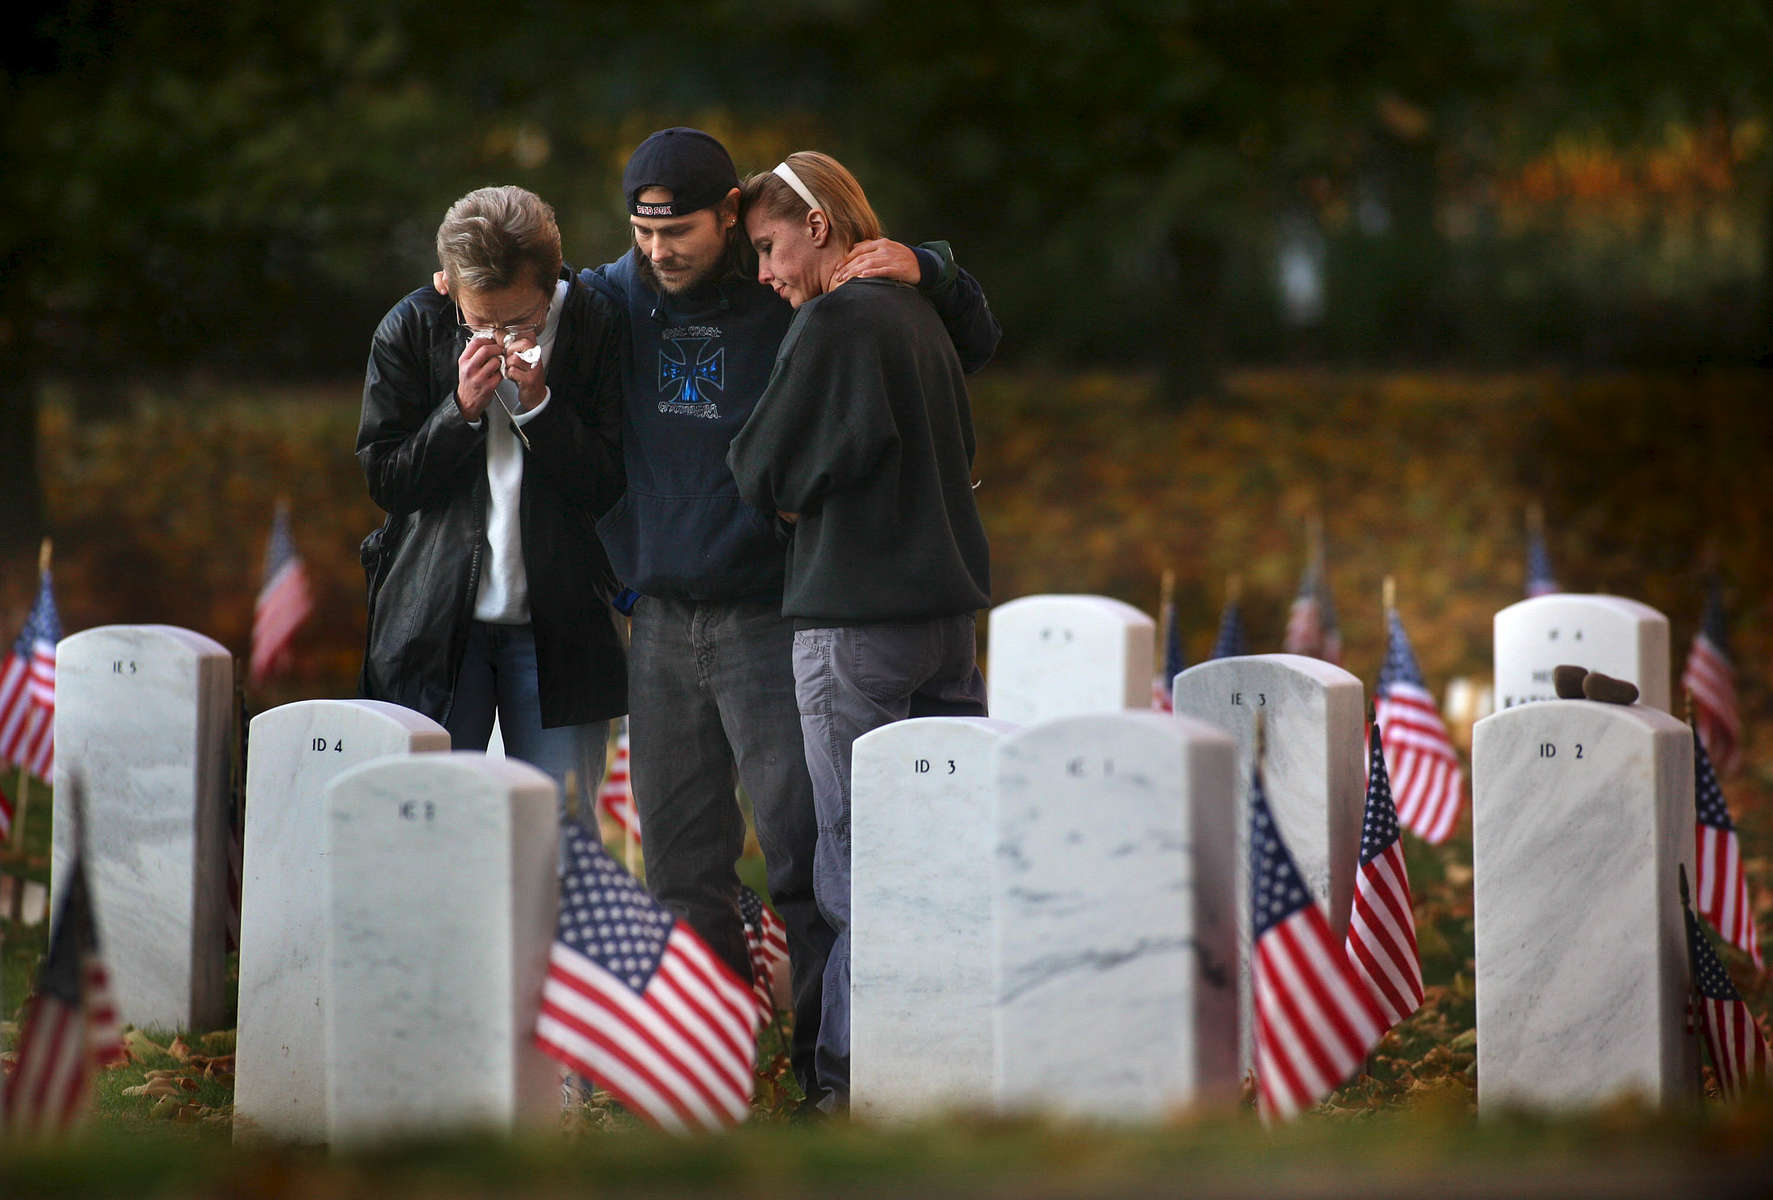 (l-r) Judith Grundwalski, Richard Grundwalski and Denise Prokop visit the grave of Richard Grundwalski , Sr. at the State Veterans' Cemetery in Middletown, Connecticut. Richard served in Vietnam in the Army and completed a total of six years in the service - he died last year due to complications from various illnesses. He was married to Judith and is the father of Richard (pictured here) who said that he came to tell his father the news that he recently got engaged to Denise.